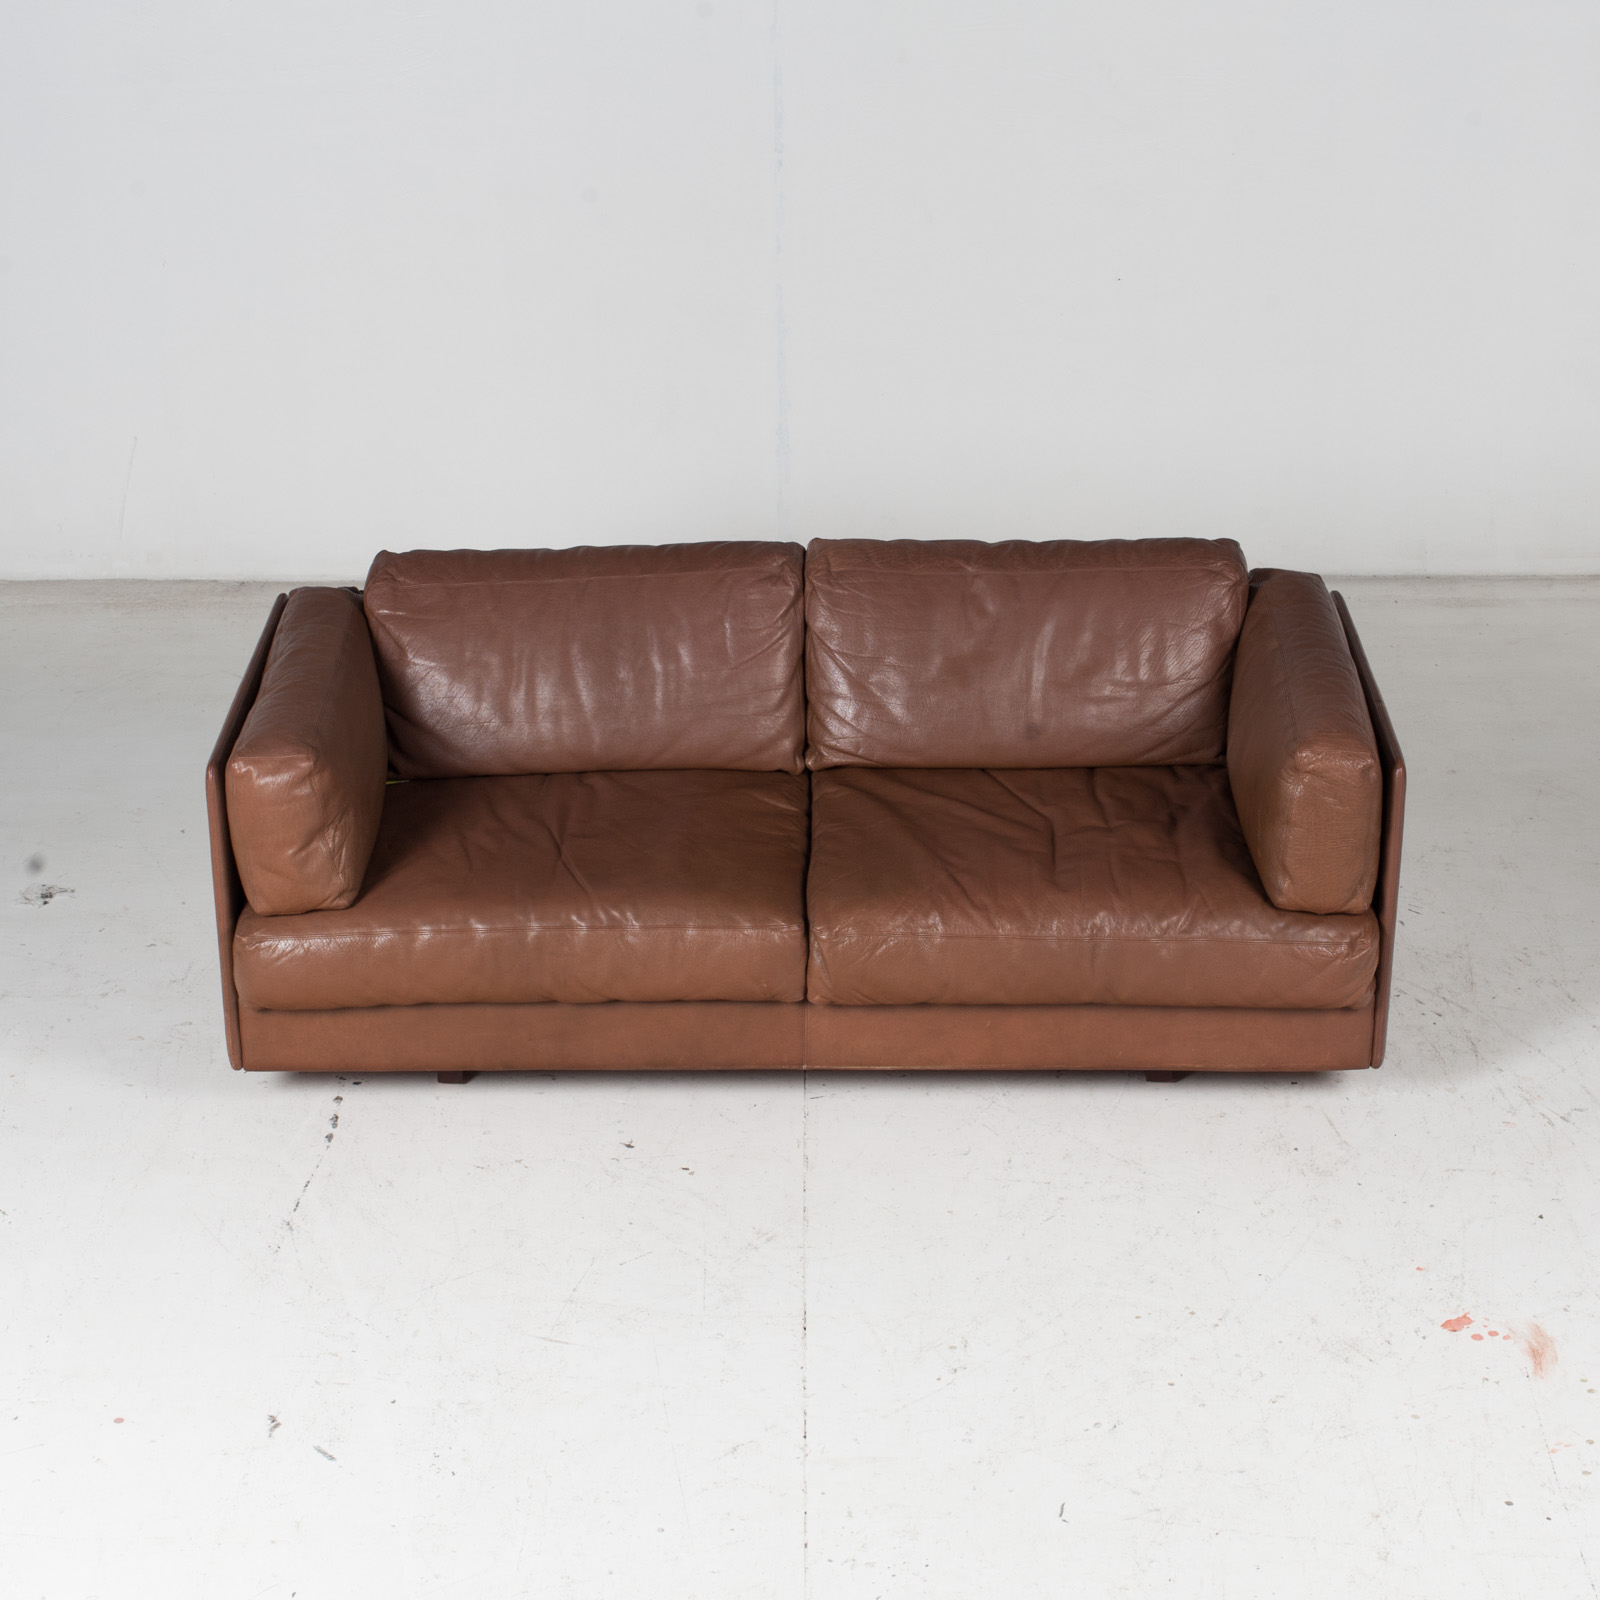 2 Seater Sofa In Brown Leather, 1960s, Switzerland 3